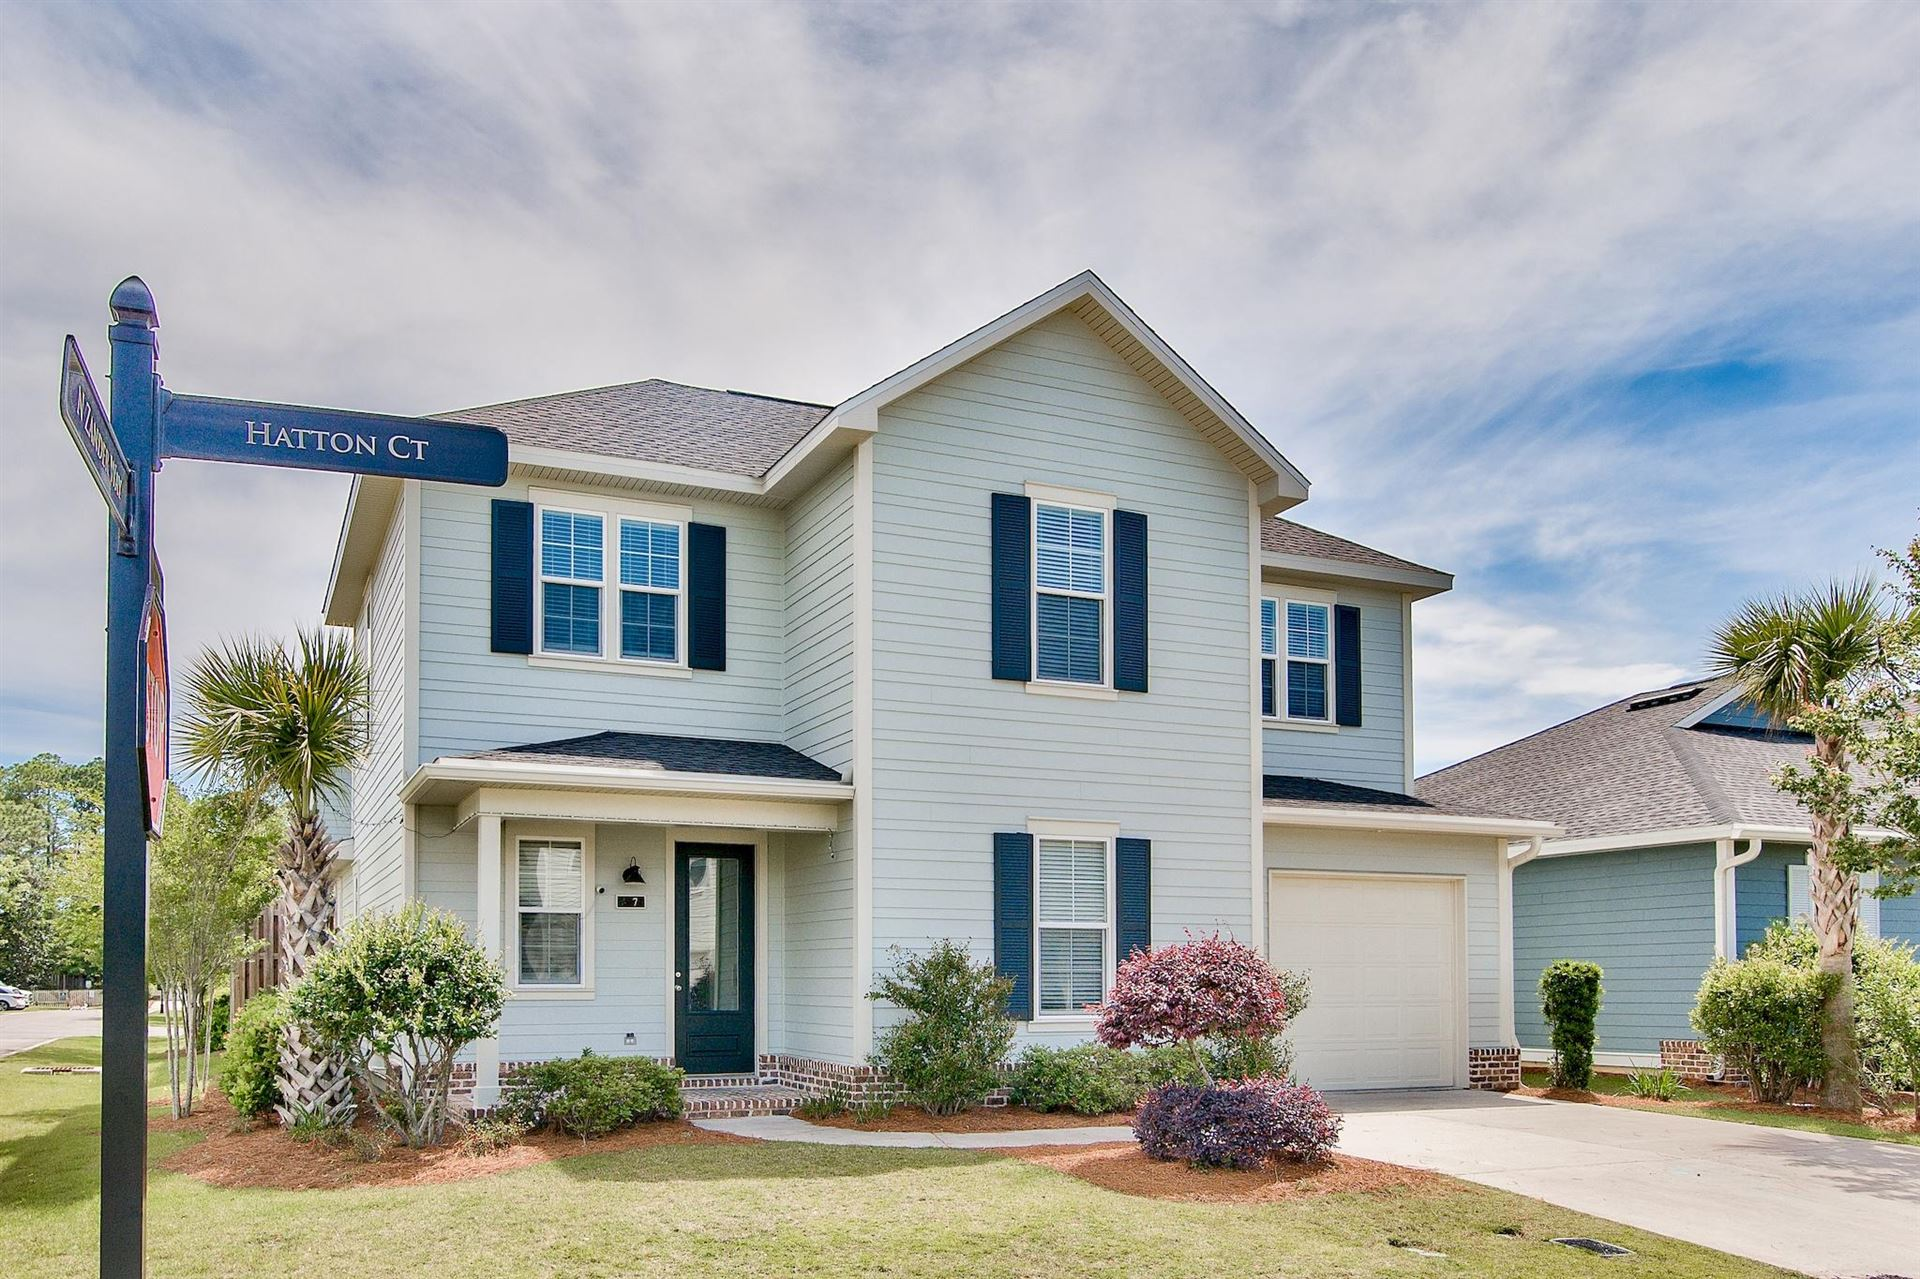 Property Image Of 7 Hatton Court In Santa Rosa Beach, Fl